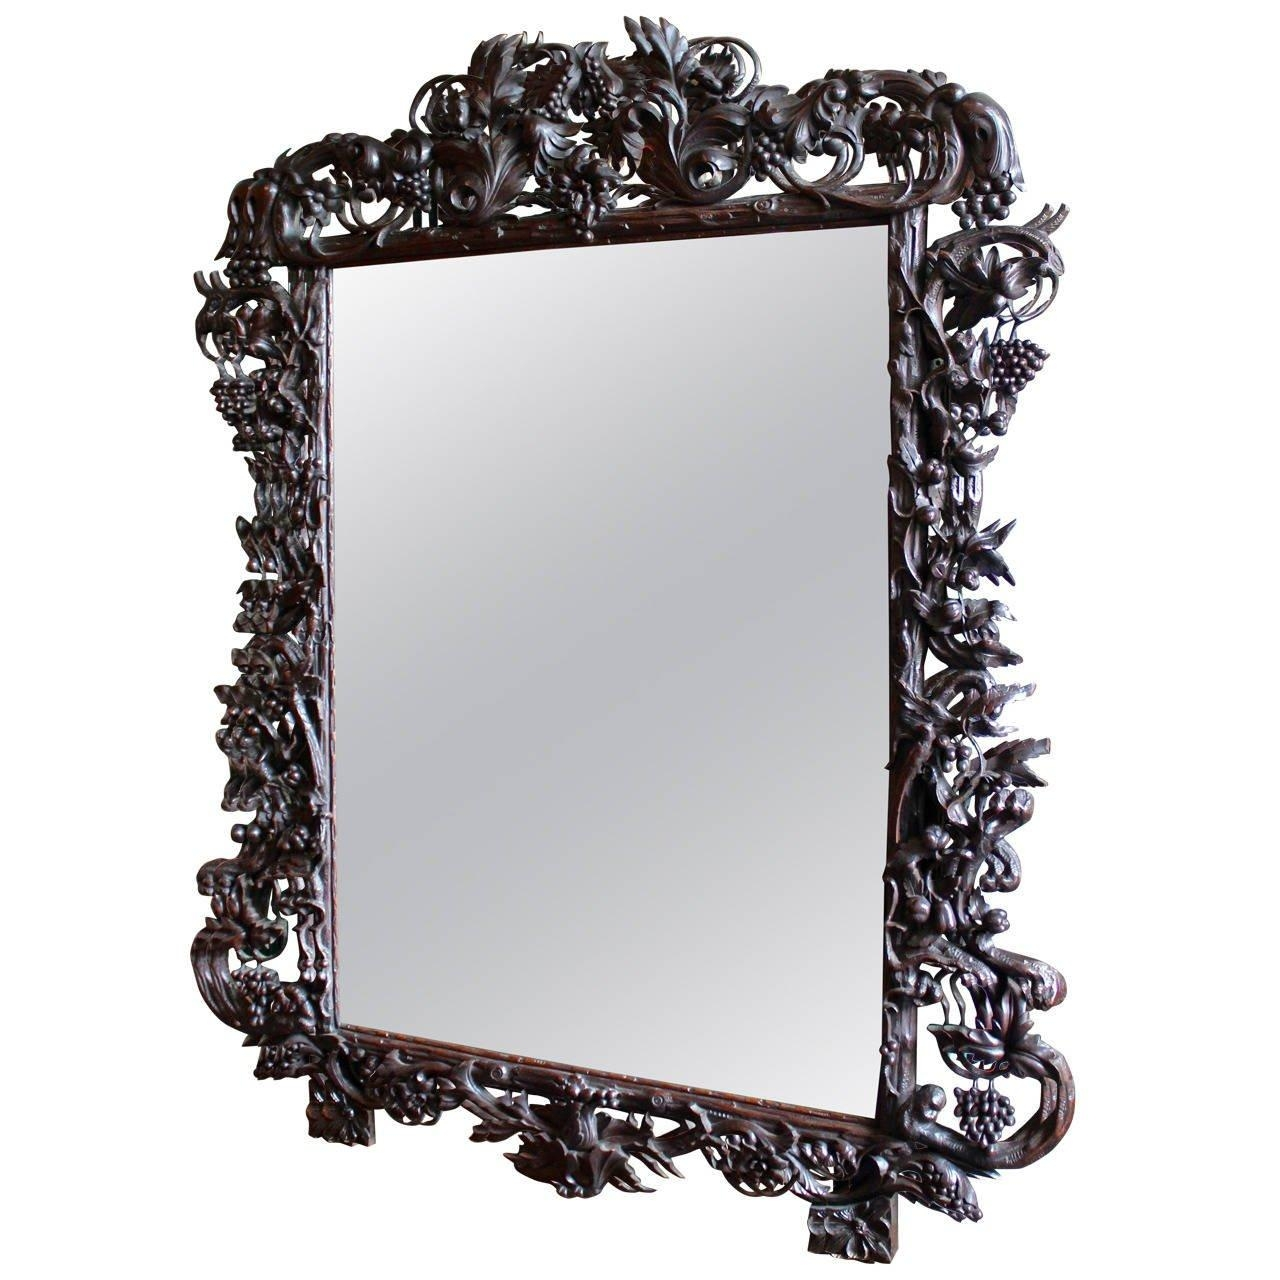 Late 19Th Century Ornate Large Black Forest French Mirror At 1Stdibs Pertaining To Large Black Mirror (Image 18 of 20)